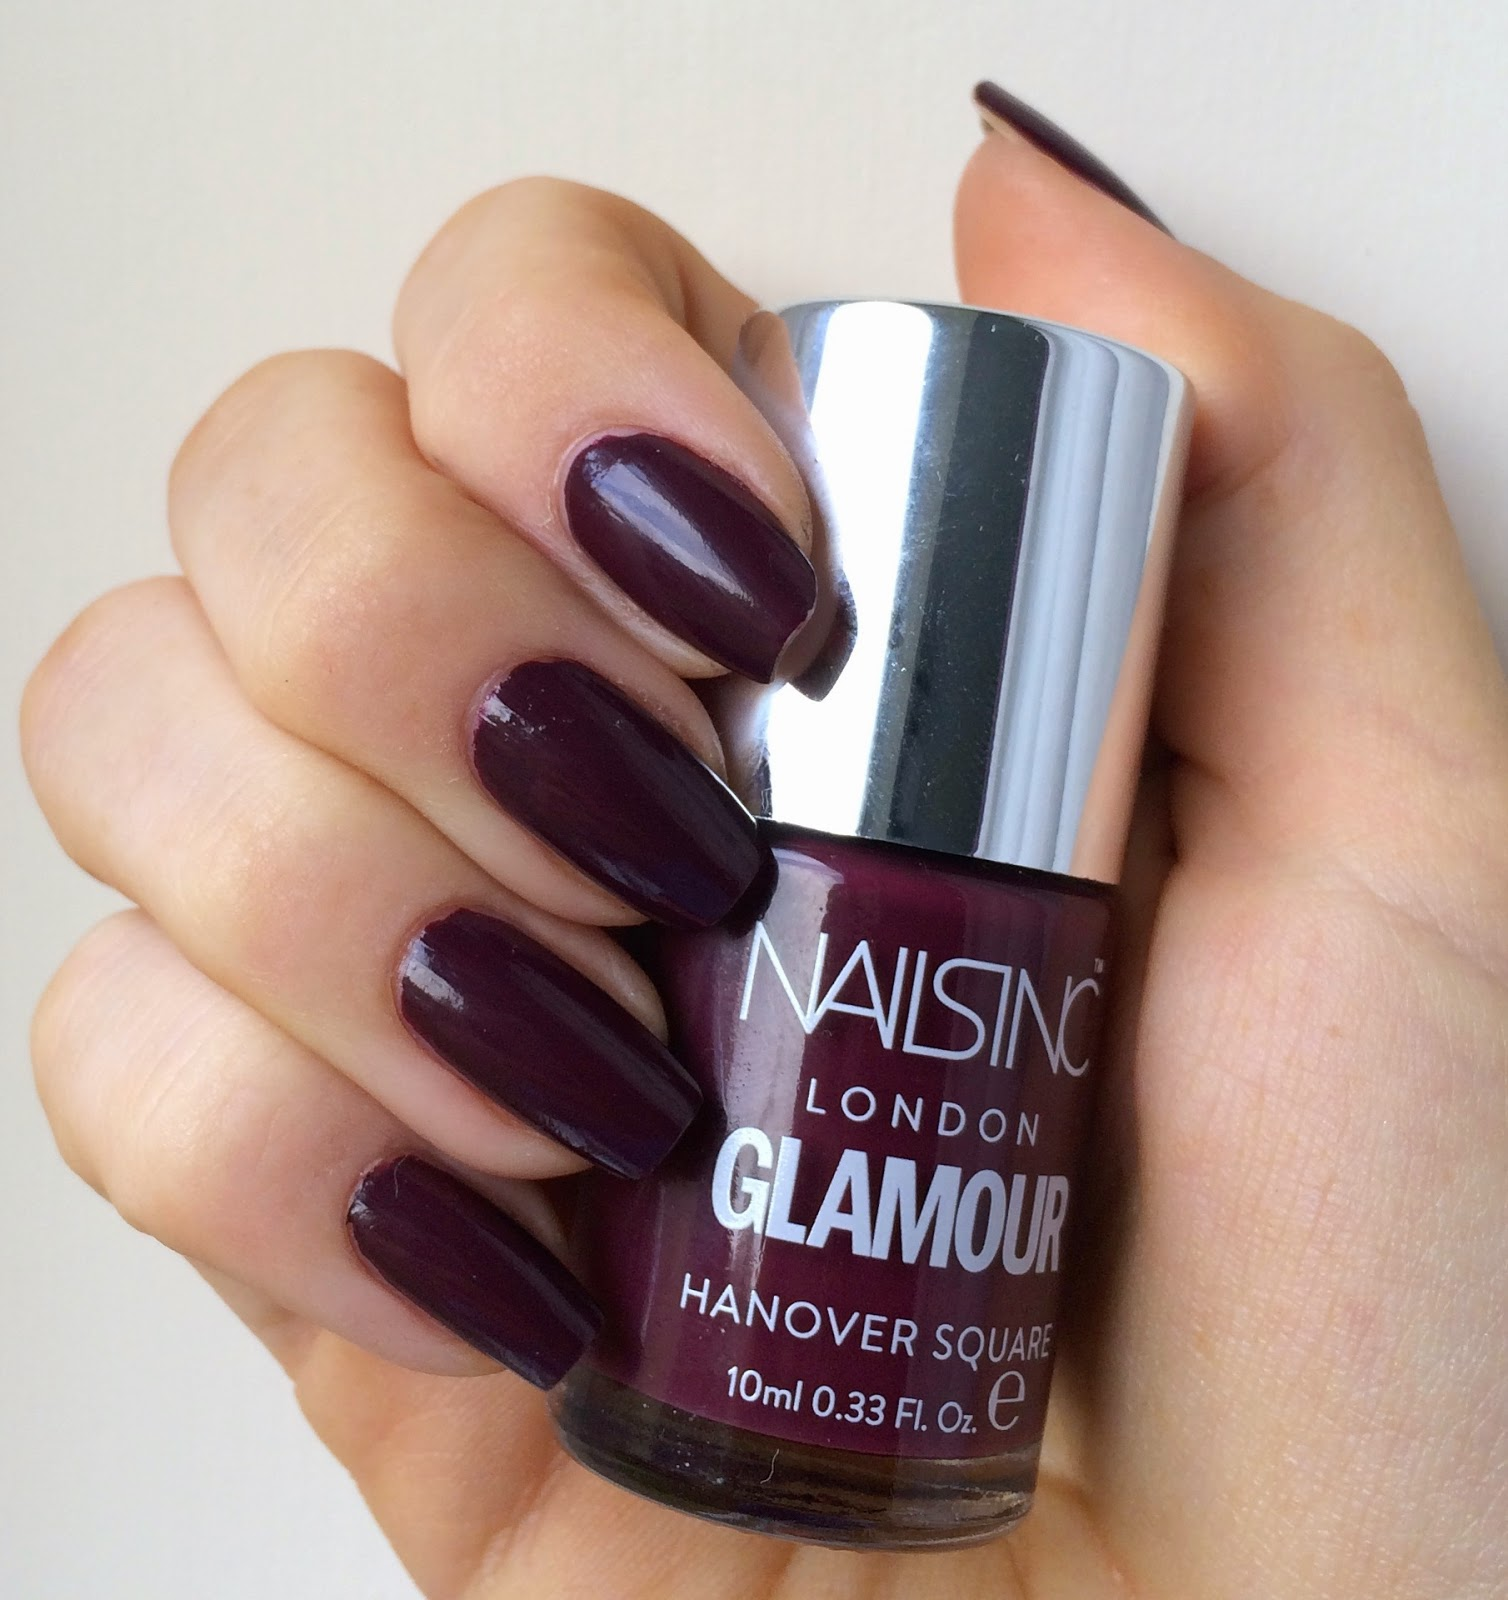 glamour-magazine-nails-inc-nail-polish-hanover-square